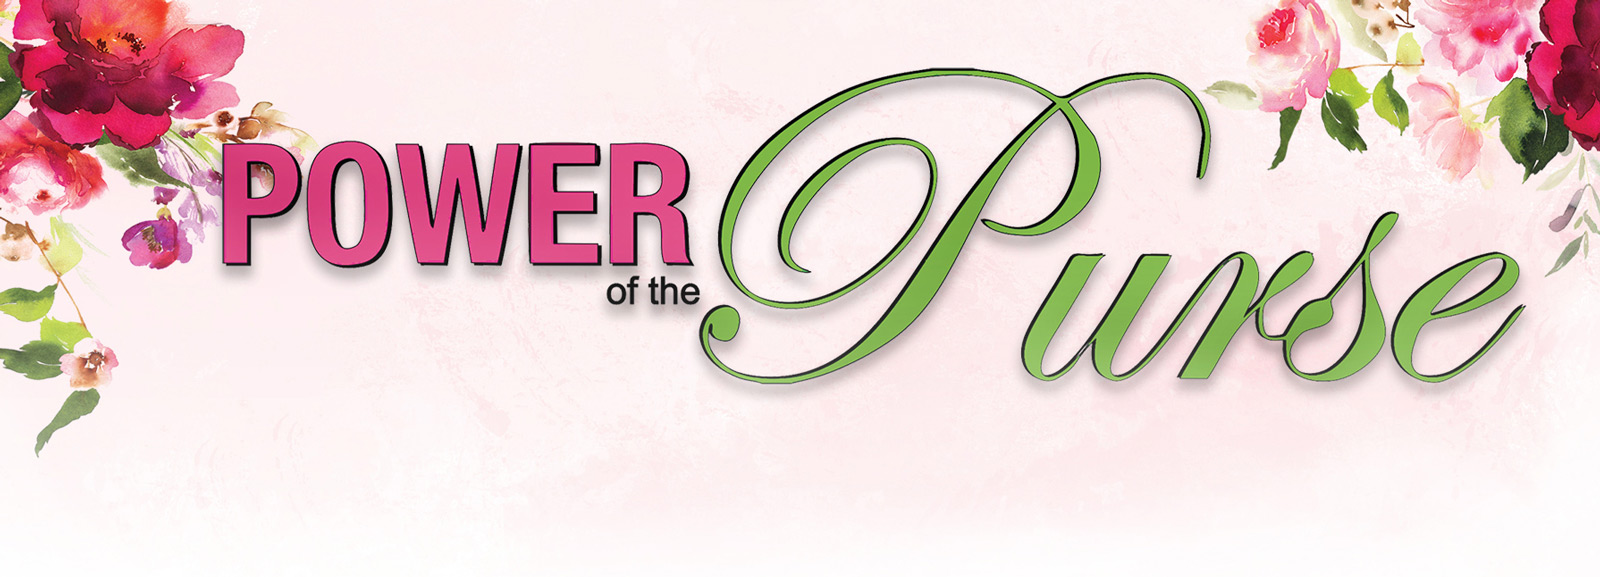 Power of the Purse Fundraiser Event at the Par-A-Dice Hotel, East Peoria.